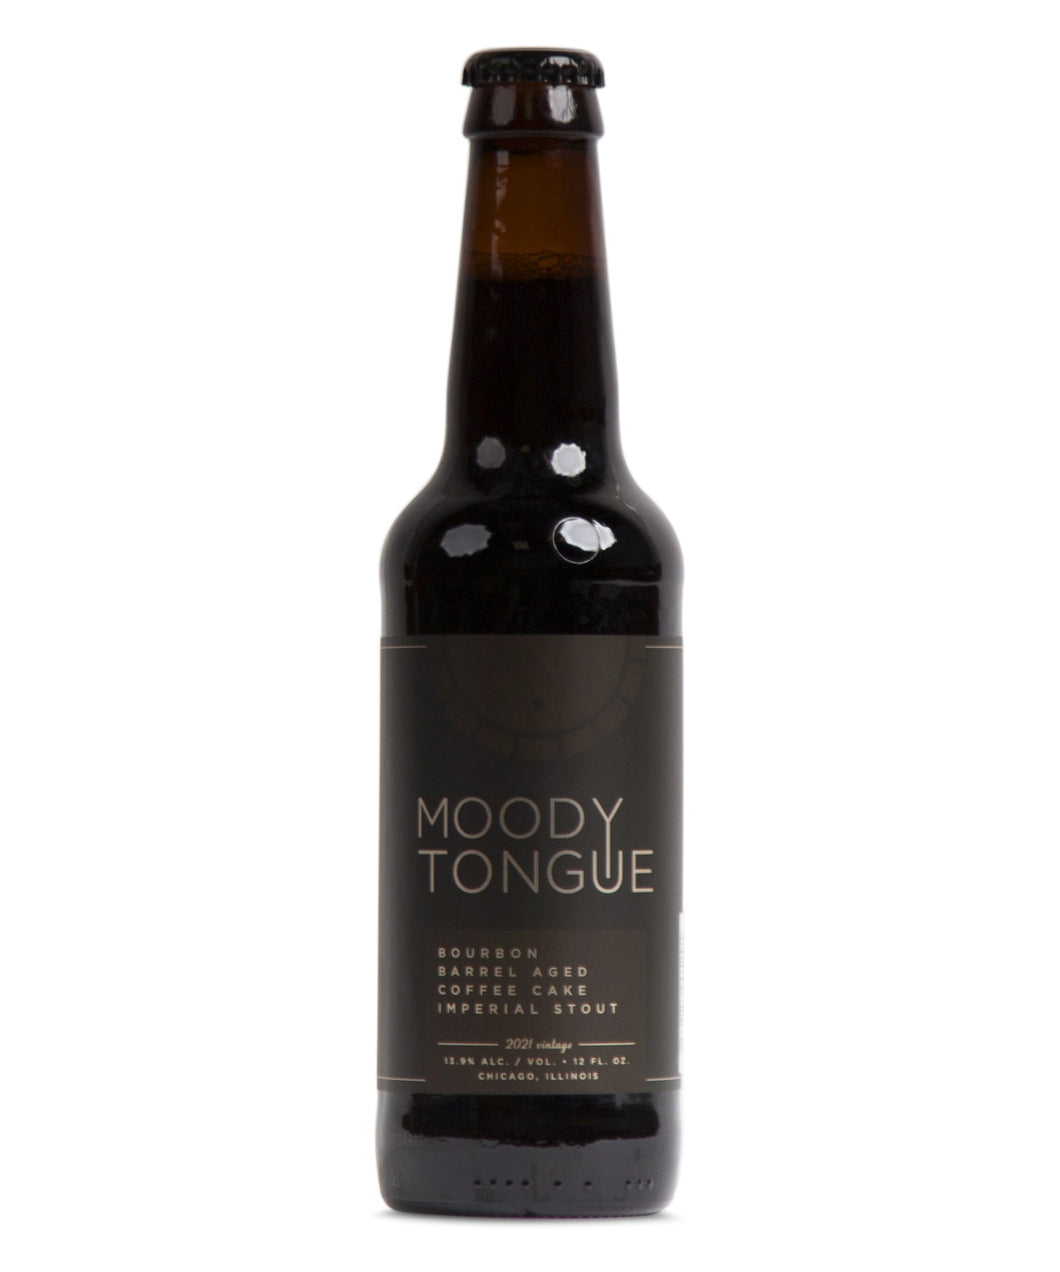 Bourbon Barrel Aged Coffee Cake Imperial Stout - Moody Tongue Brewing Company Delivered By TapRm